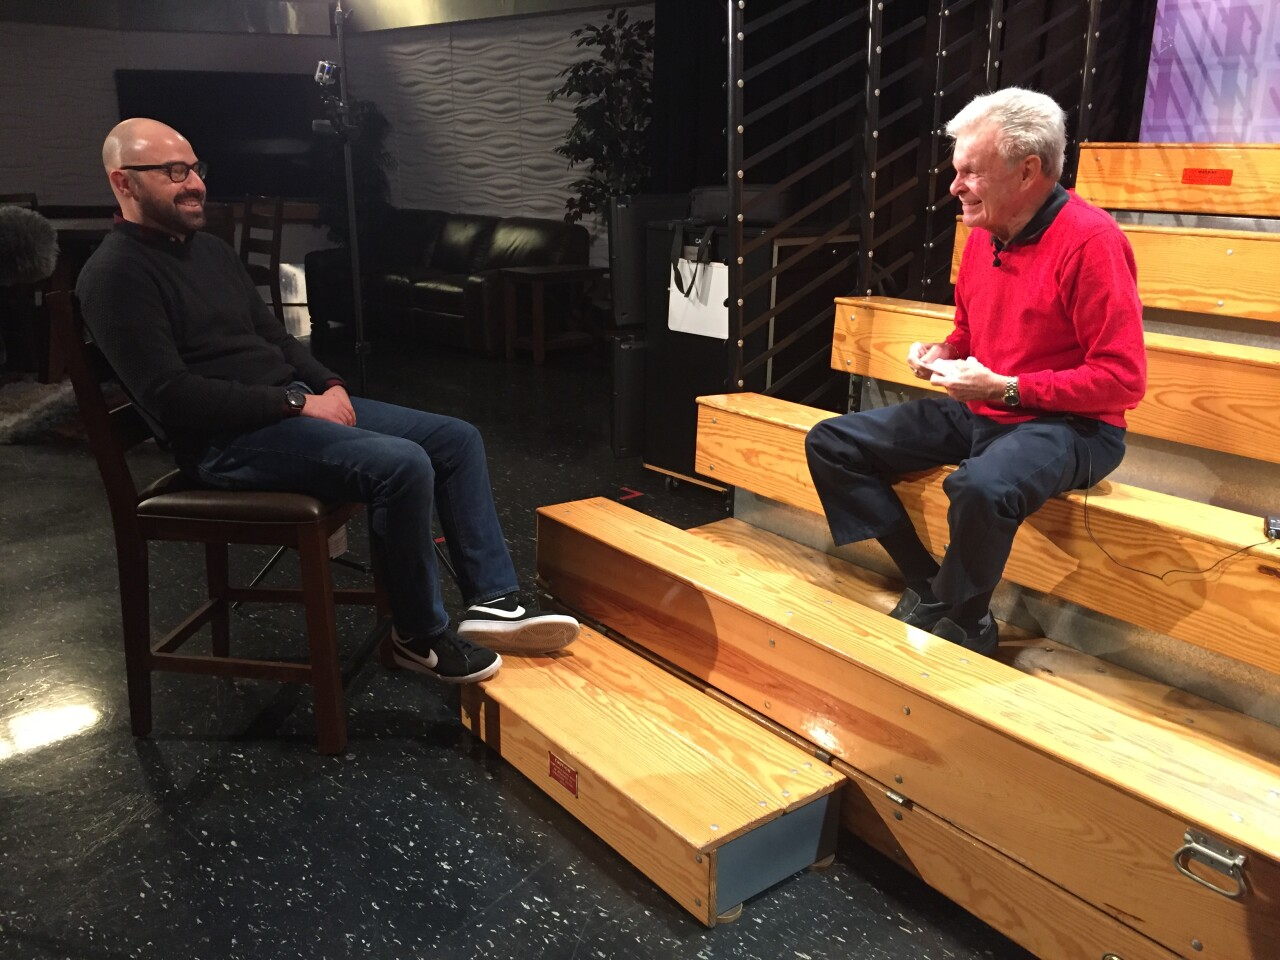 News 5 producer Randy Ziemnik sits down with Don Webster